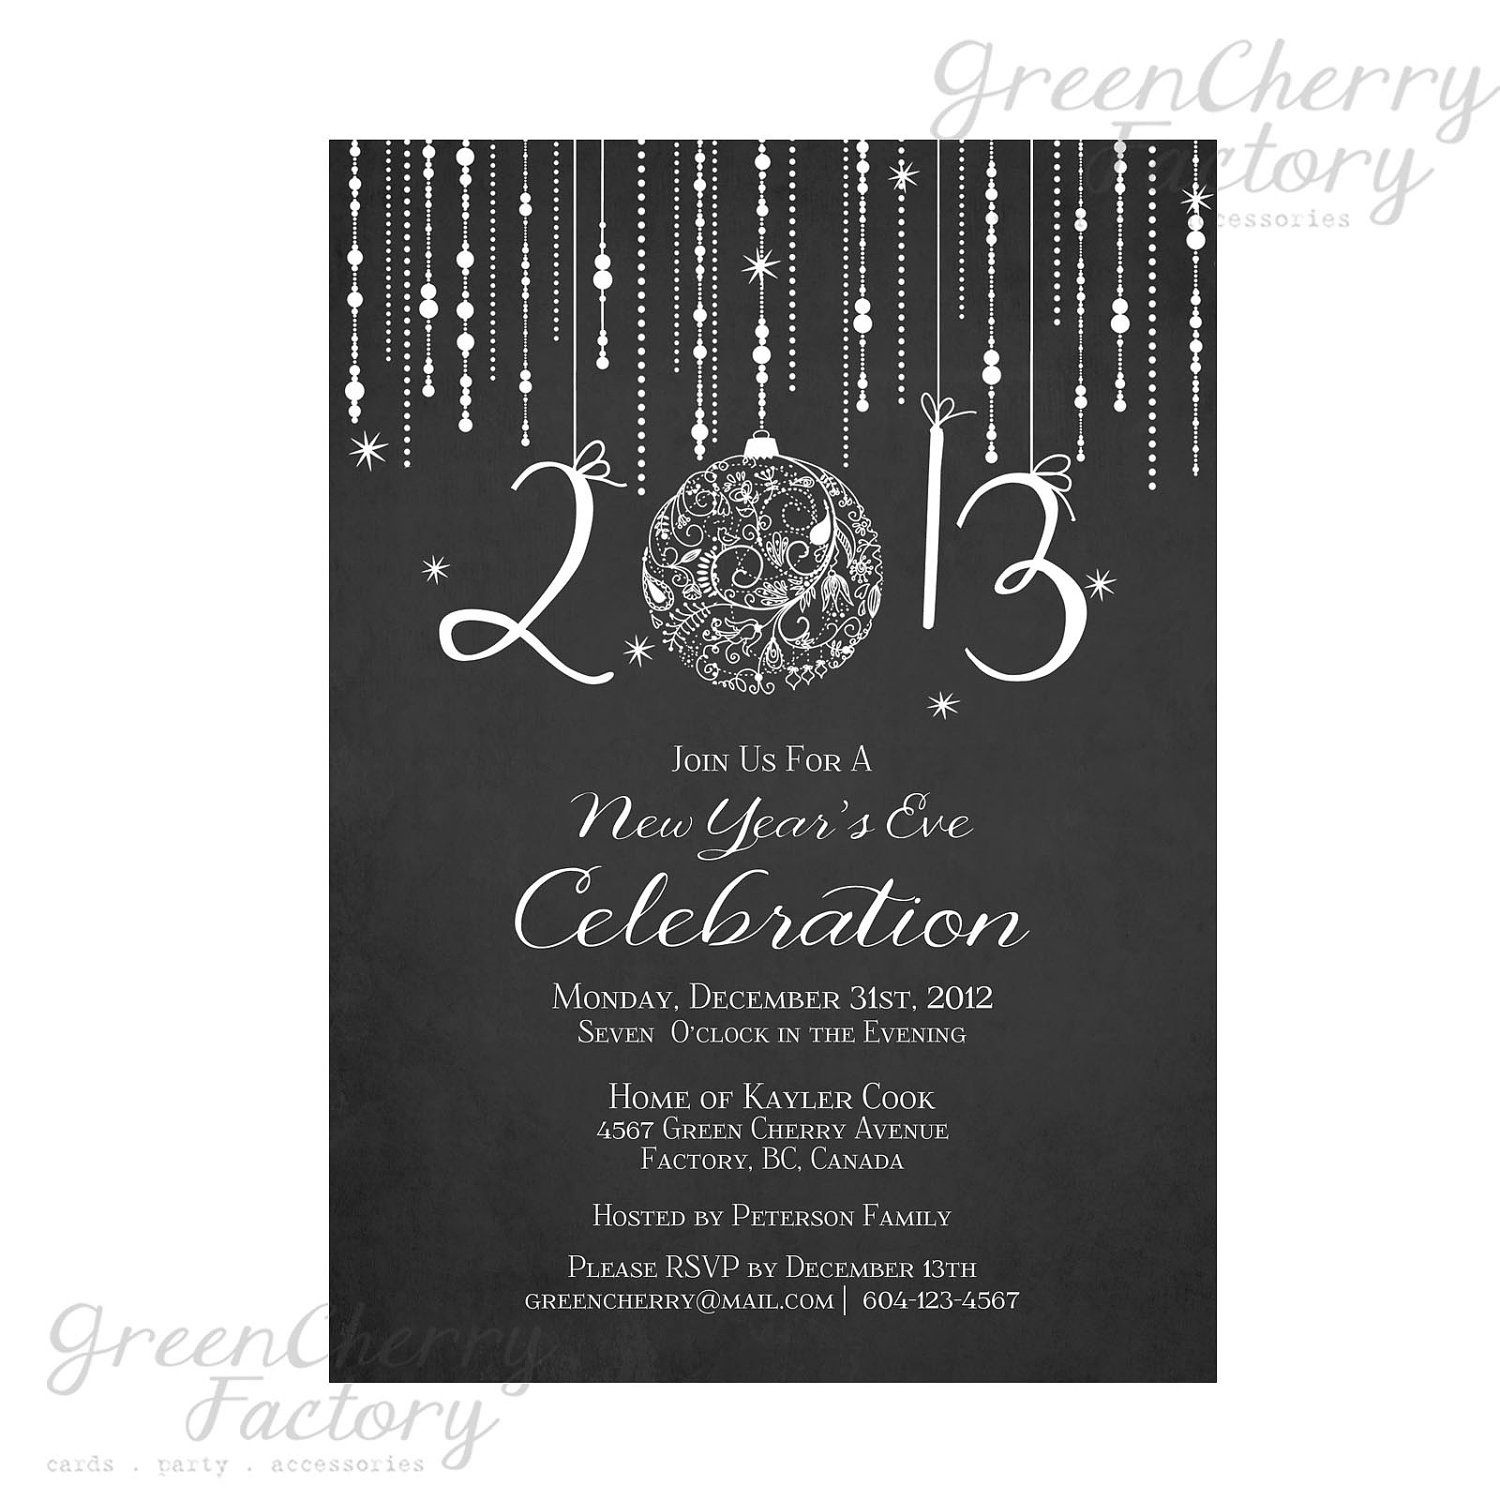 printable chalkboard new year invitation elegant new years eve invite digital new year invitation no251 1500 via etsy